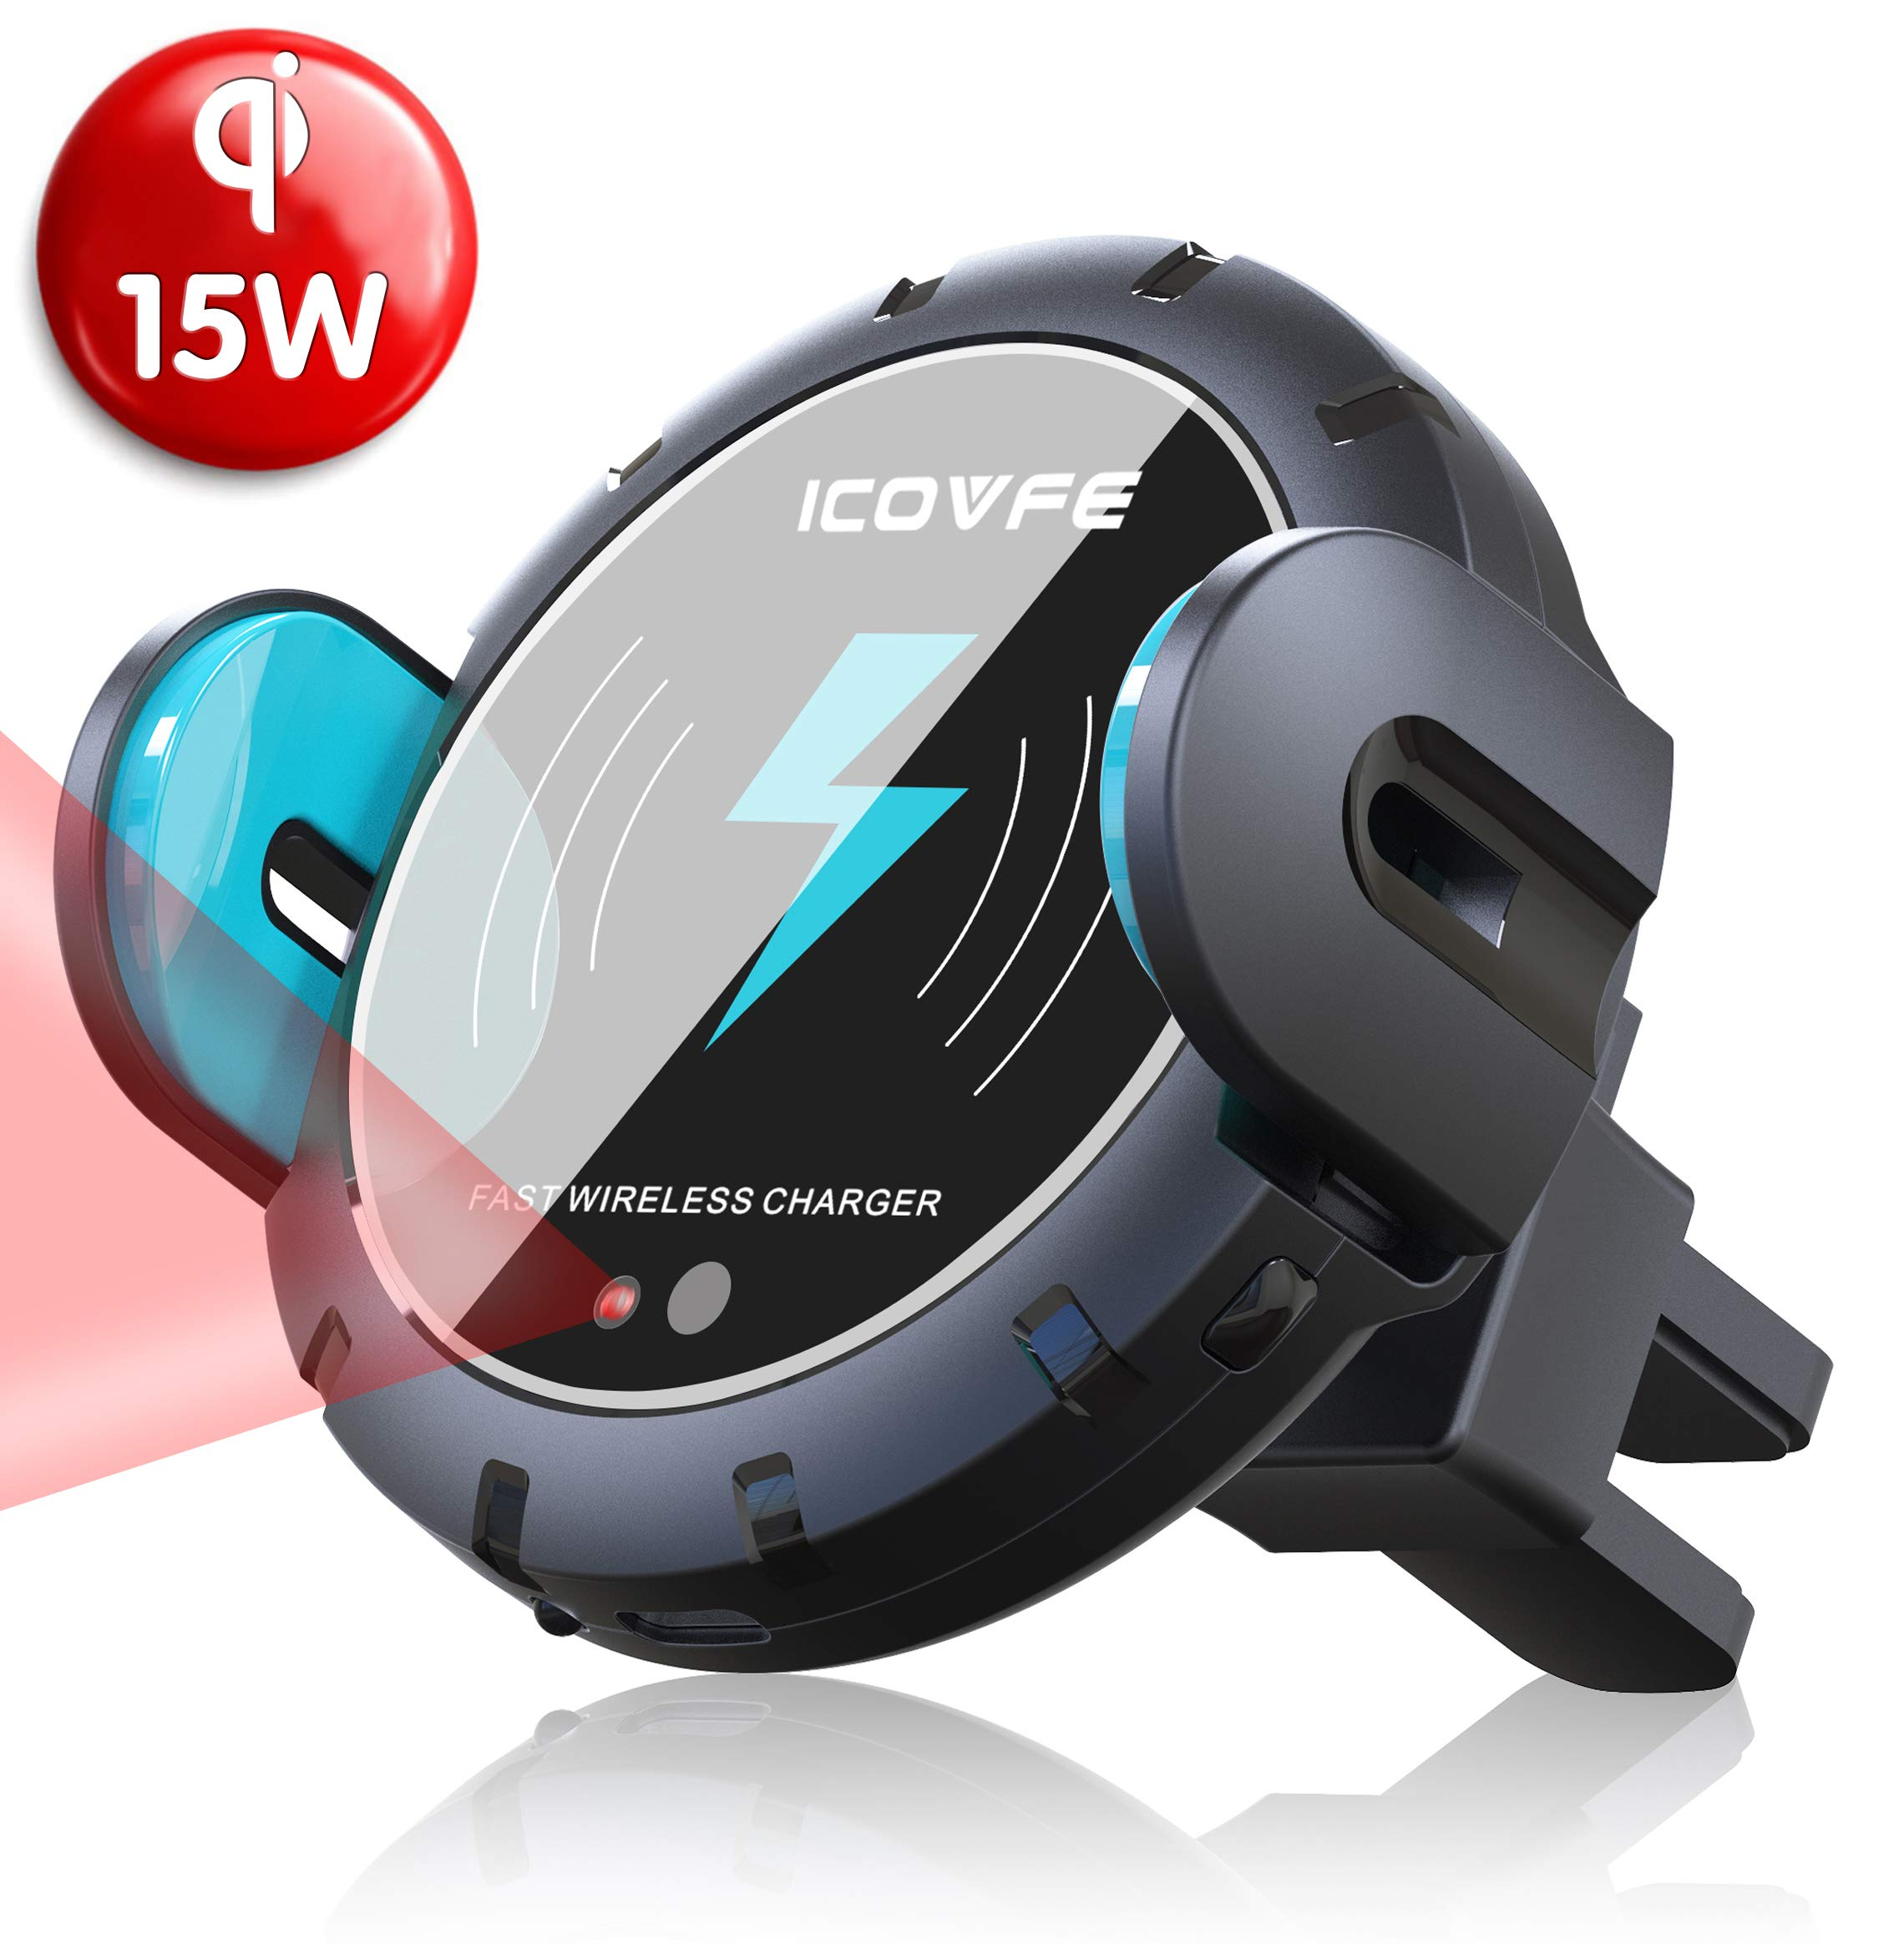 Wireless Car Charger Mount, iCovfe Auto Clamping with IR Sensor Qi 15W/10W/7.5W Wireless Fast Charger Air Vent Phone Holder Compatible with iPhone X/Xs/Xs Max/XR/8/8 Plus/Samsung S10/S9/S8/Note9/Note8 by ICOVFE